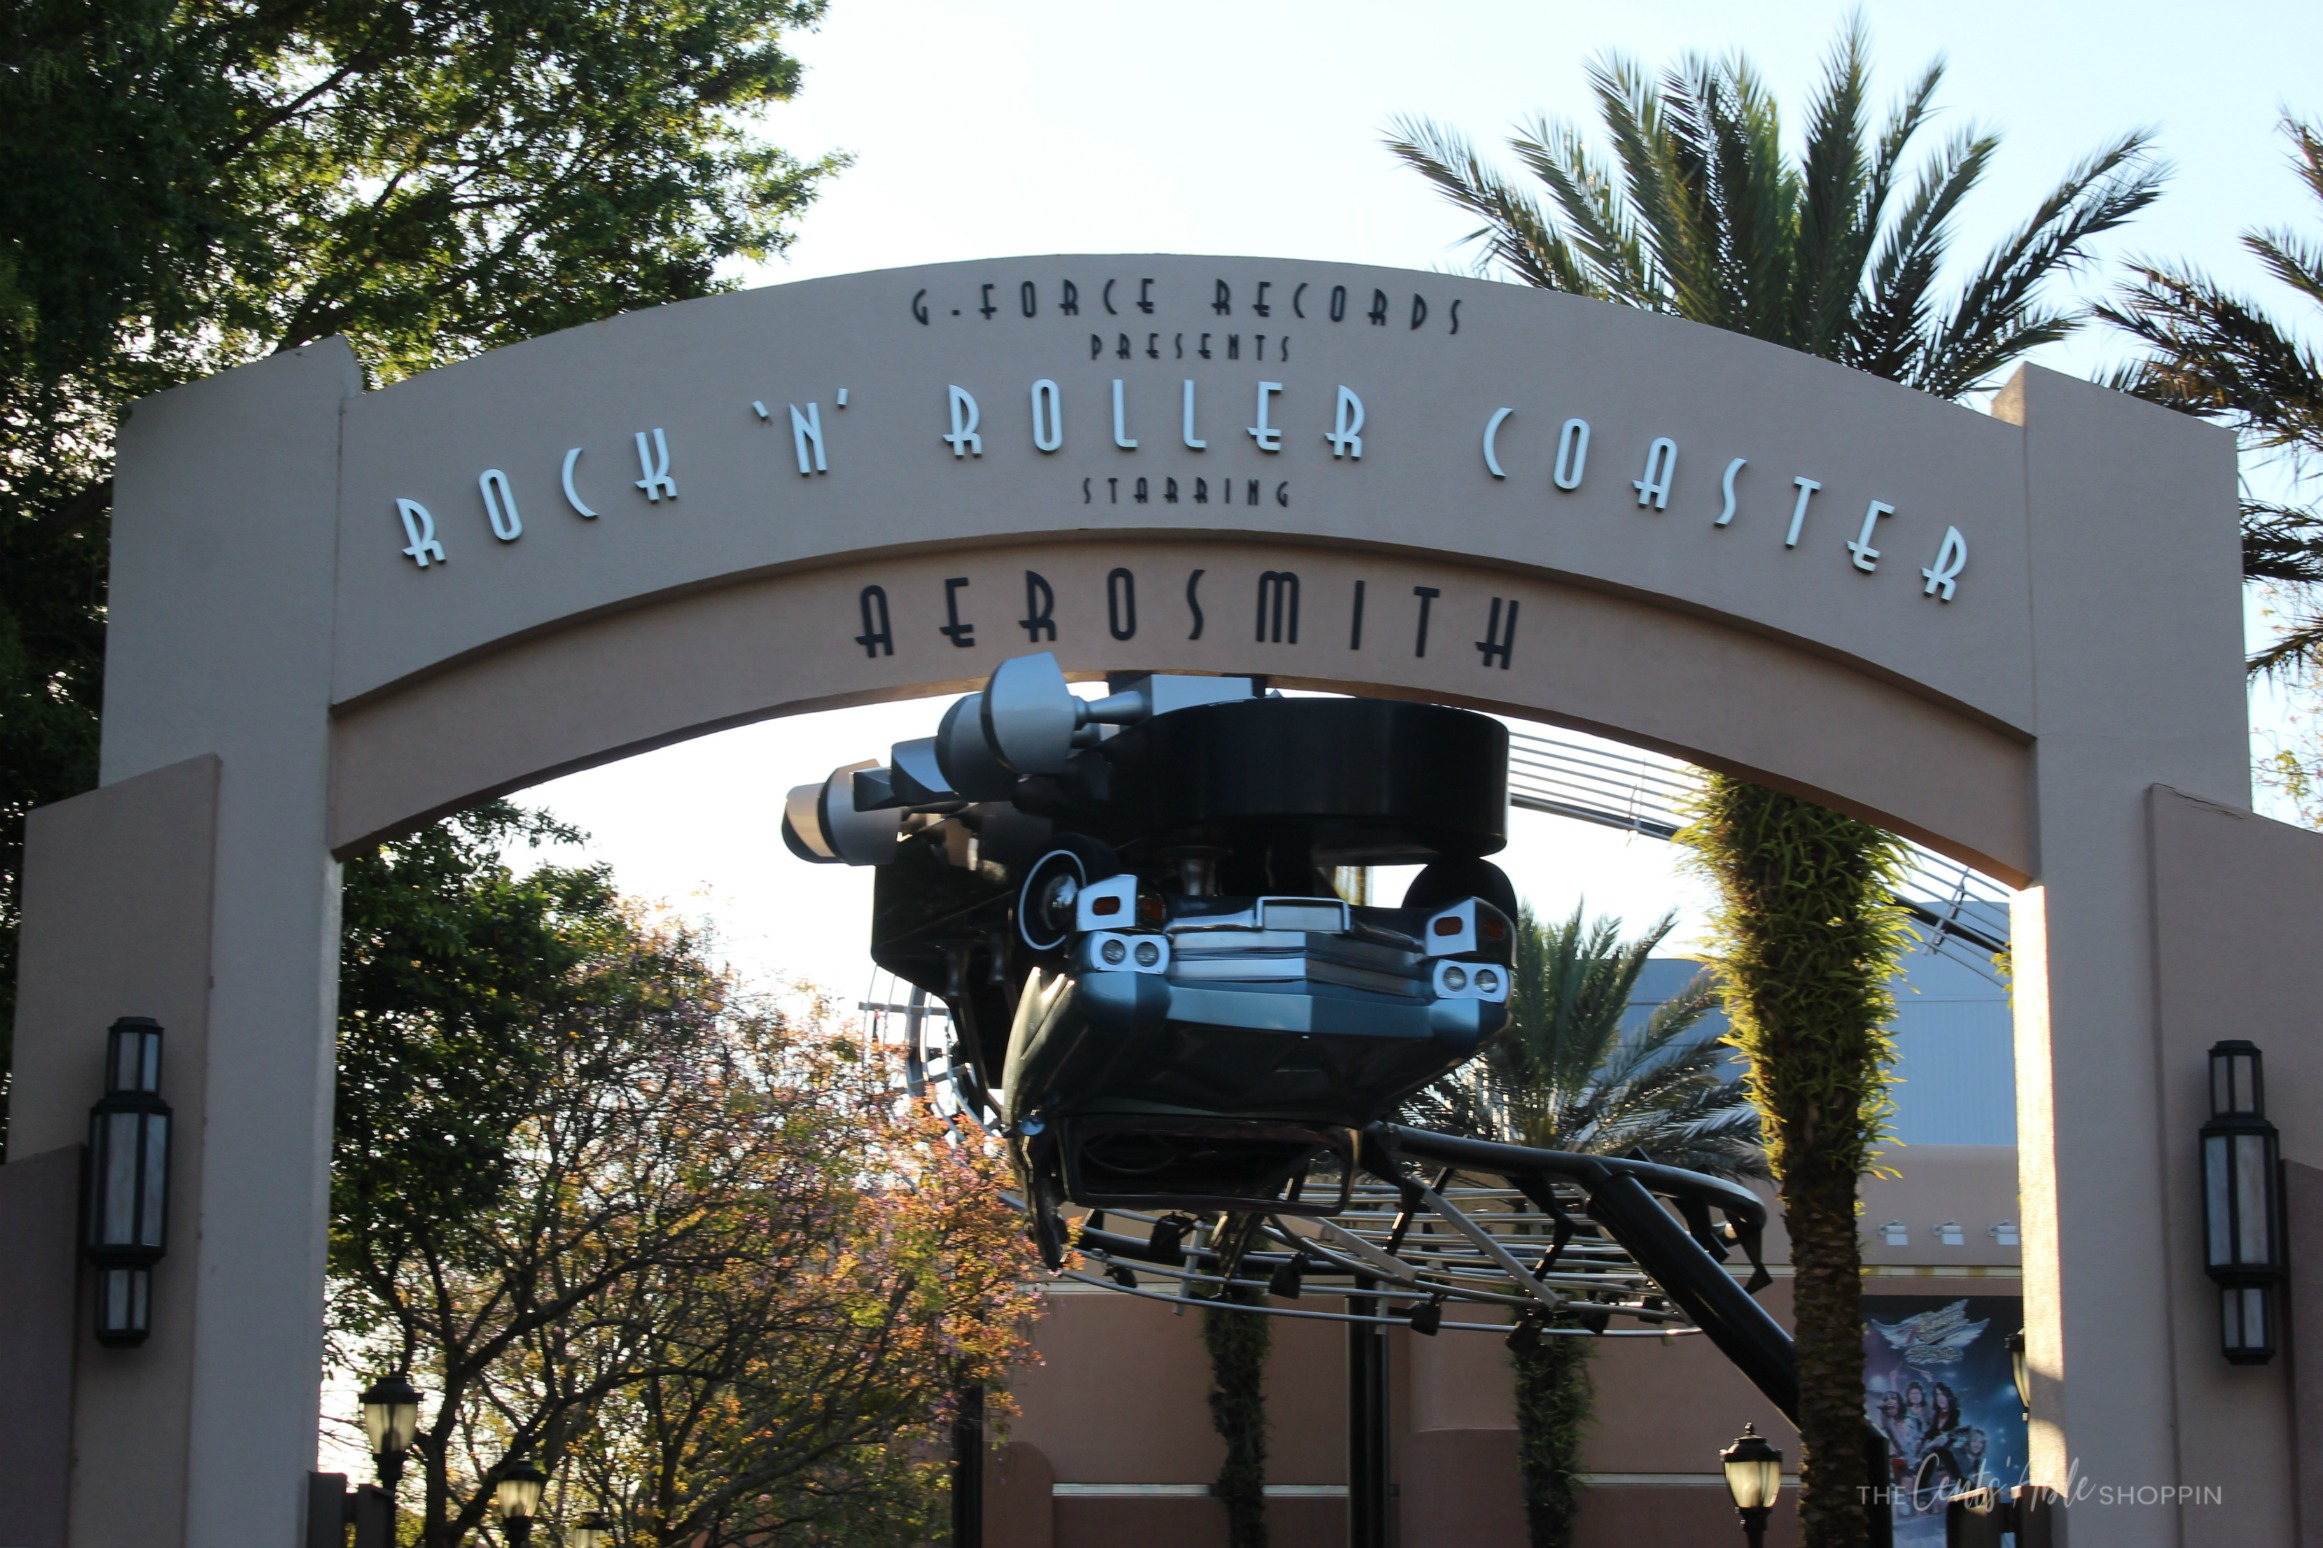 Aerosmith,  Rock'N'Roller Coaster at Disney's Hollywood Studios, Florida.